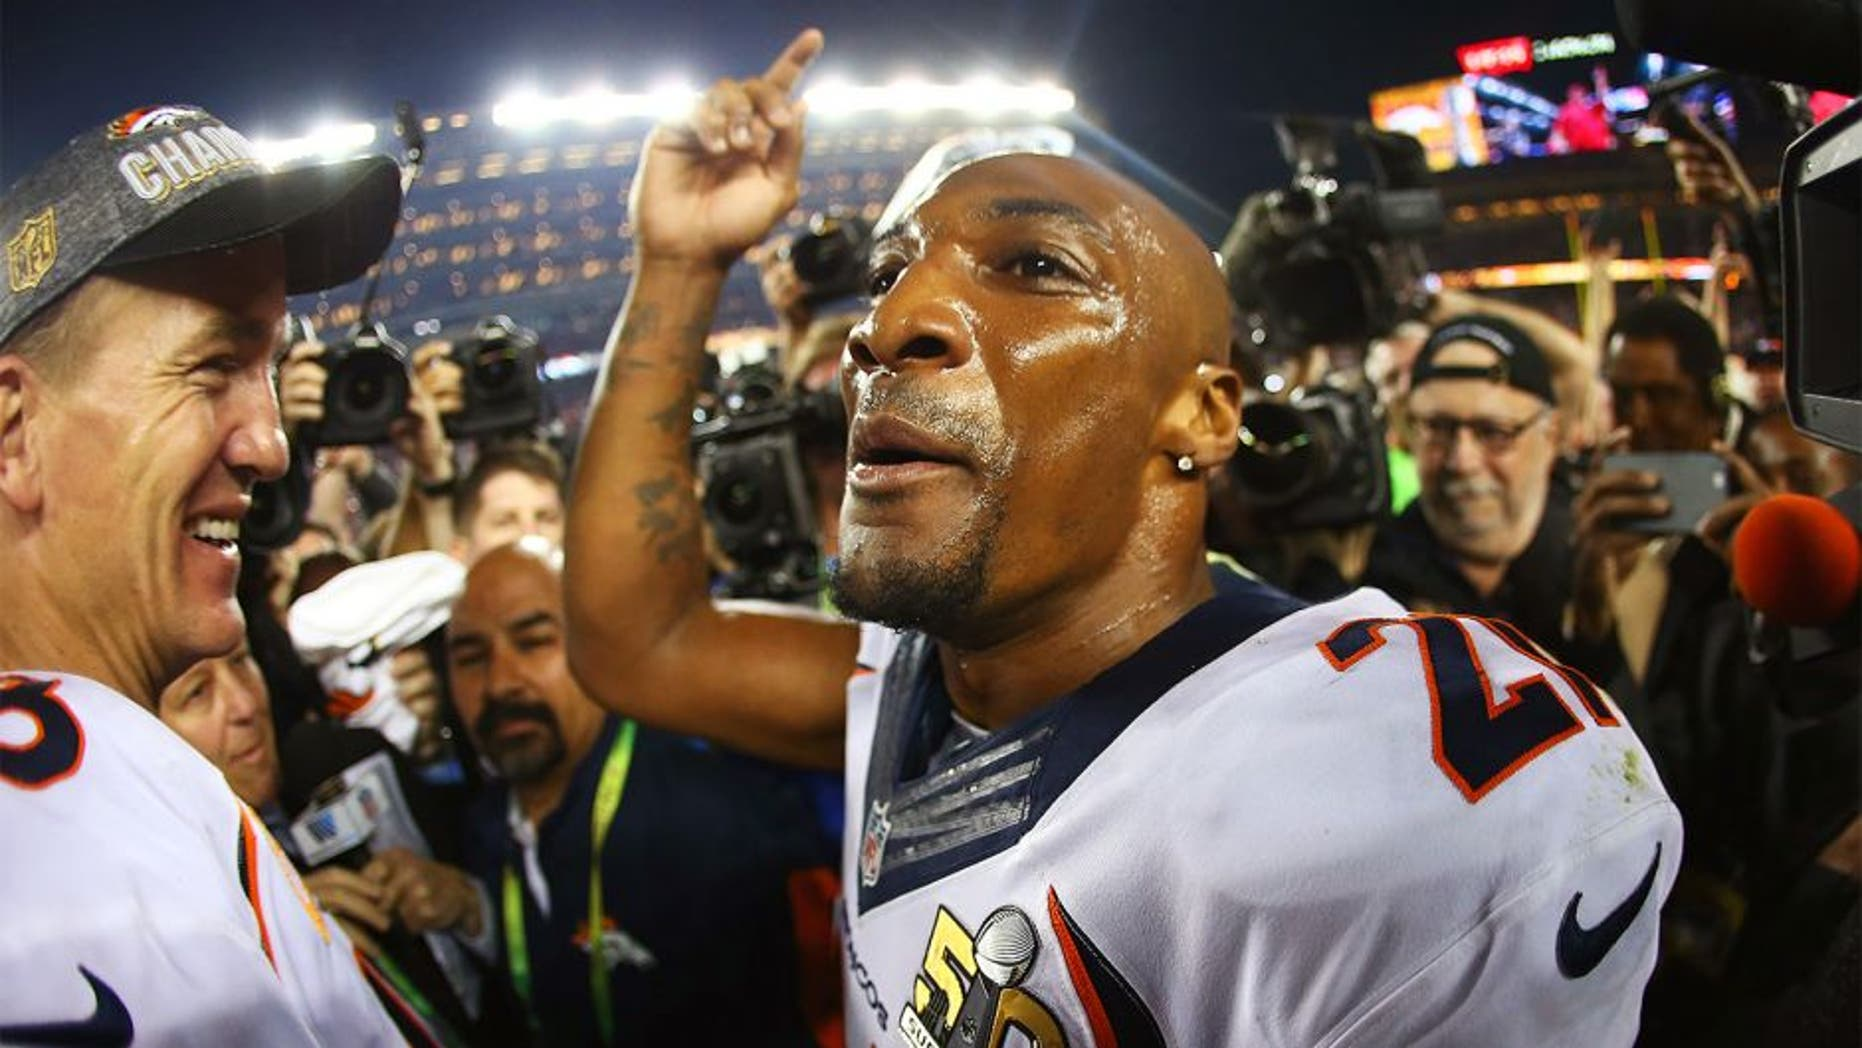 SANTA CLARA, CA - FEBRUARY 07: Aqib Talib #21 of the Denver Broncos celebrates after defeating the Carolina Panthers during Super Bowl 50 at Levi's Stadium on February 7, 2016 in Santa Clara, California. The Broncos defeated the Panthers 24-10. (Photo by Ronald Martinez/Getty Images)